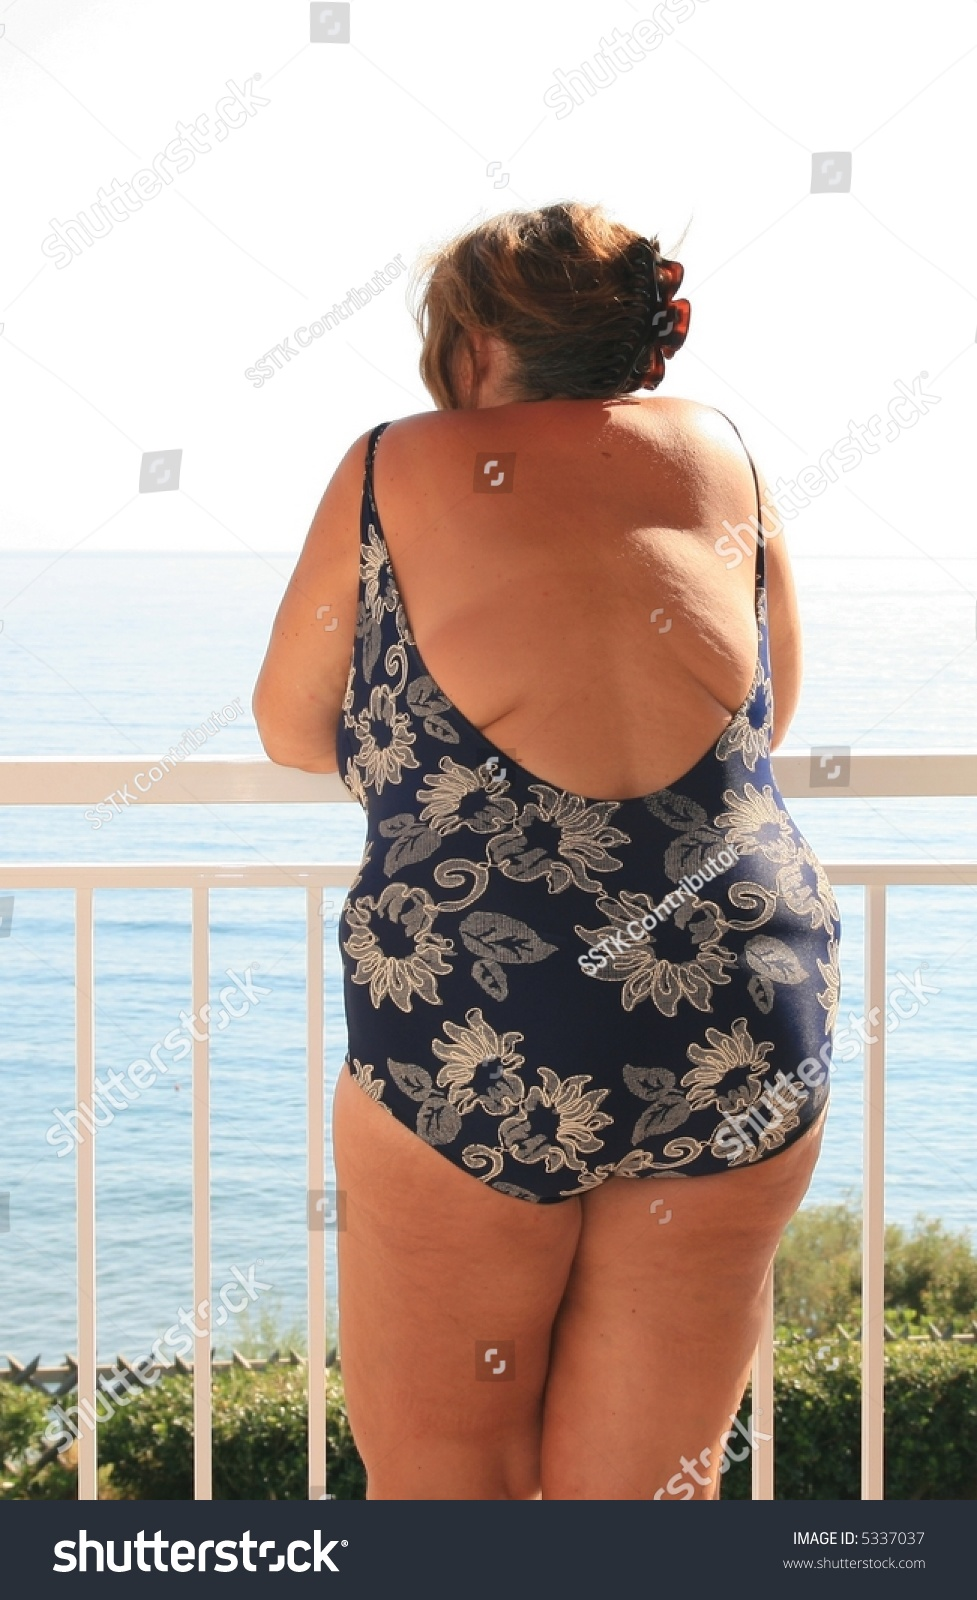 Obese girl in bathing suit entertaining